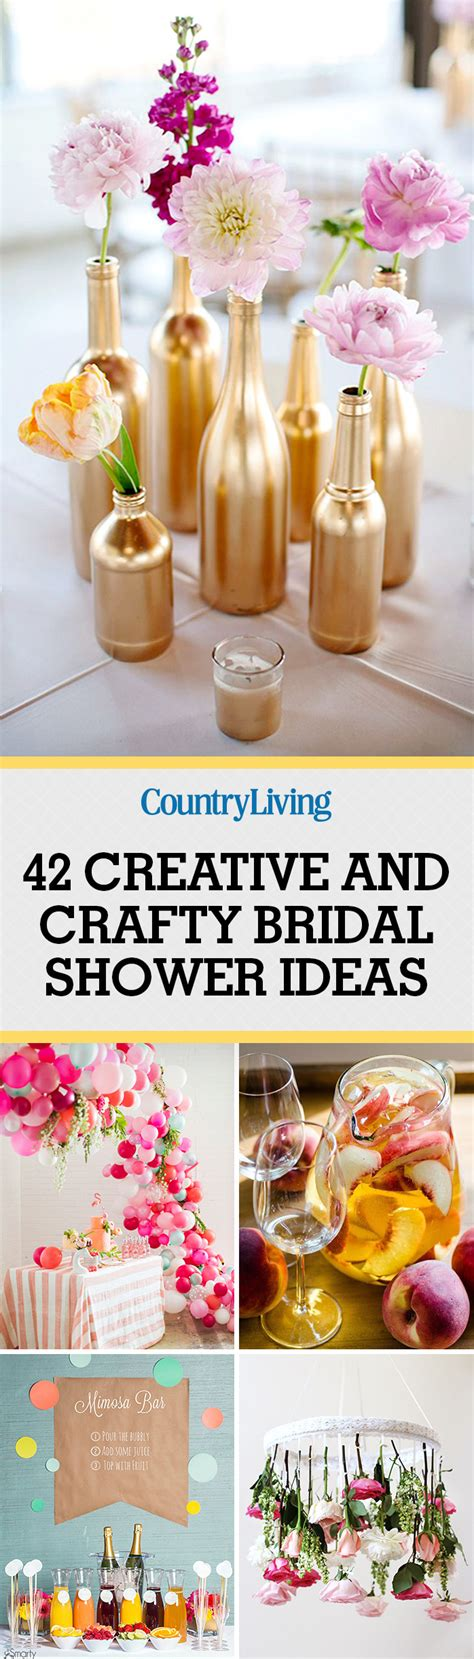 easy to play at bridal showers 50 best bridal shower ideas themes food and